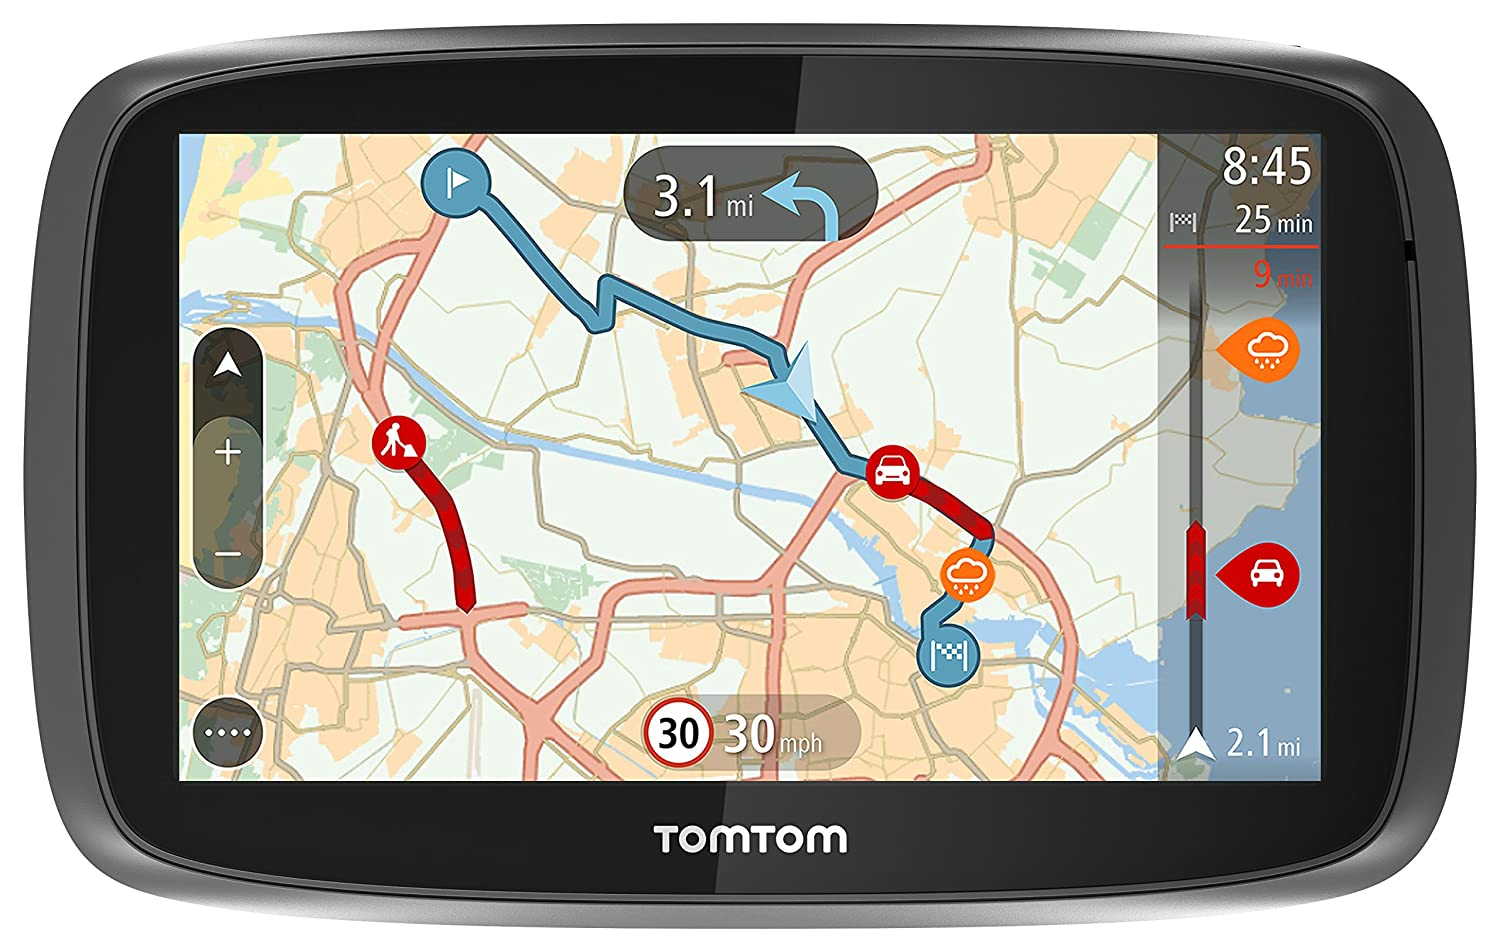 Tomtom Go 50 5 Inch Sat Nav With Western Euan Maps And Lifetime Map And Traffic Updates Amazon Co Uk Electronics